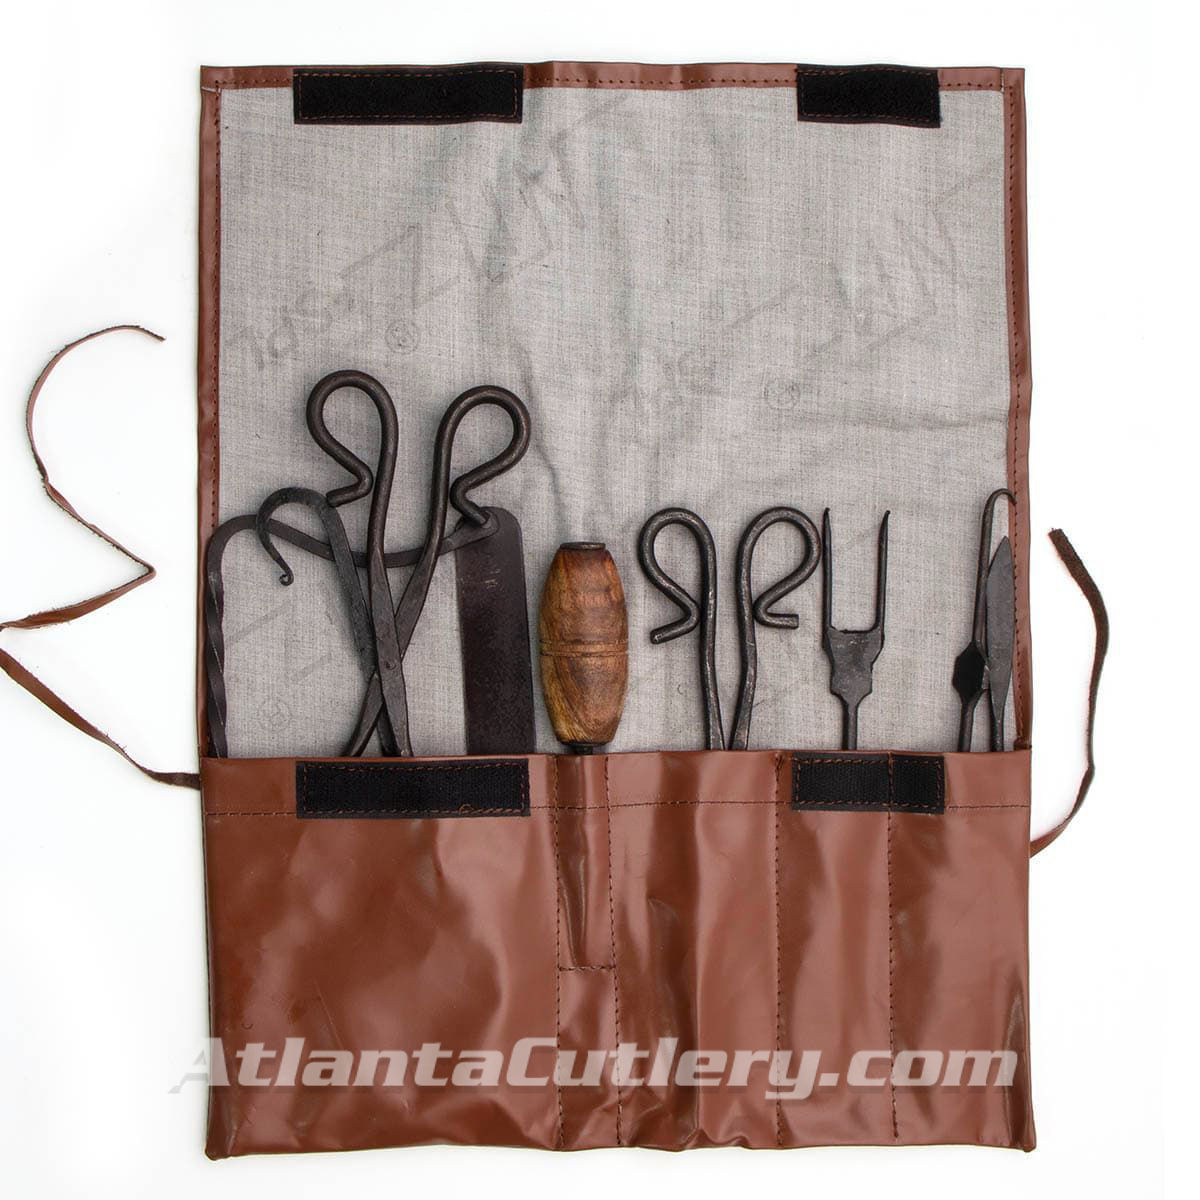 19th Century Replica Battlefield Surgery Kit with 8 historical carbon steel tools in a pouch